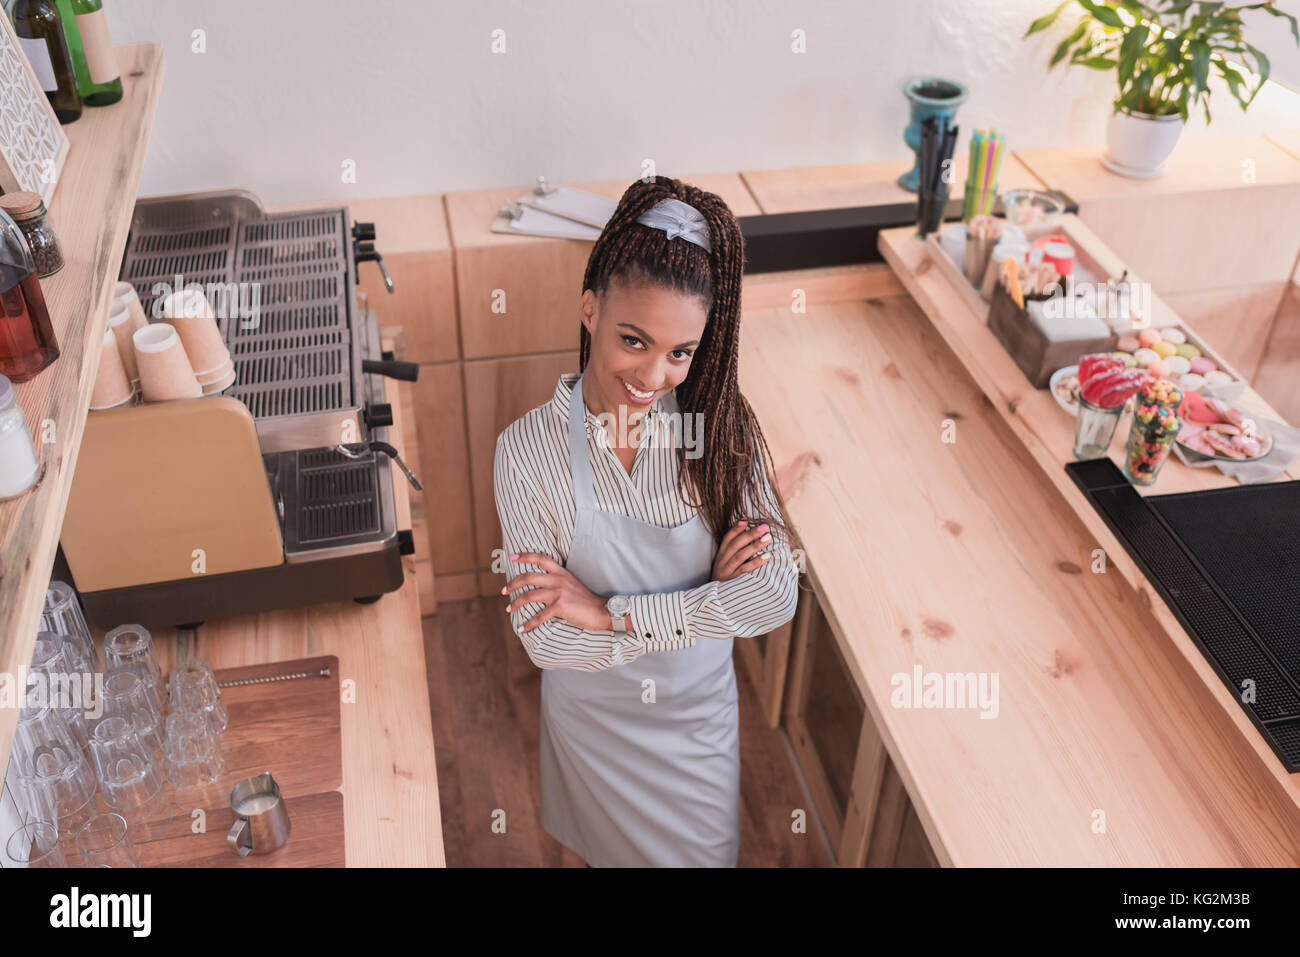 barista posing with arms crossed - Stock Image